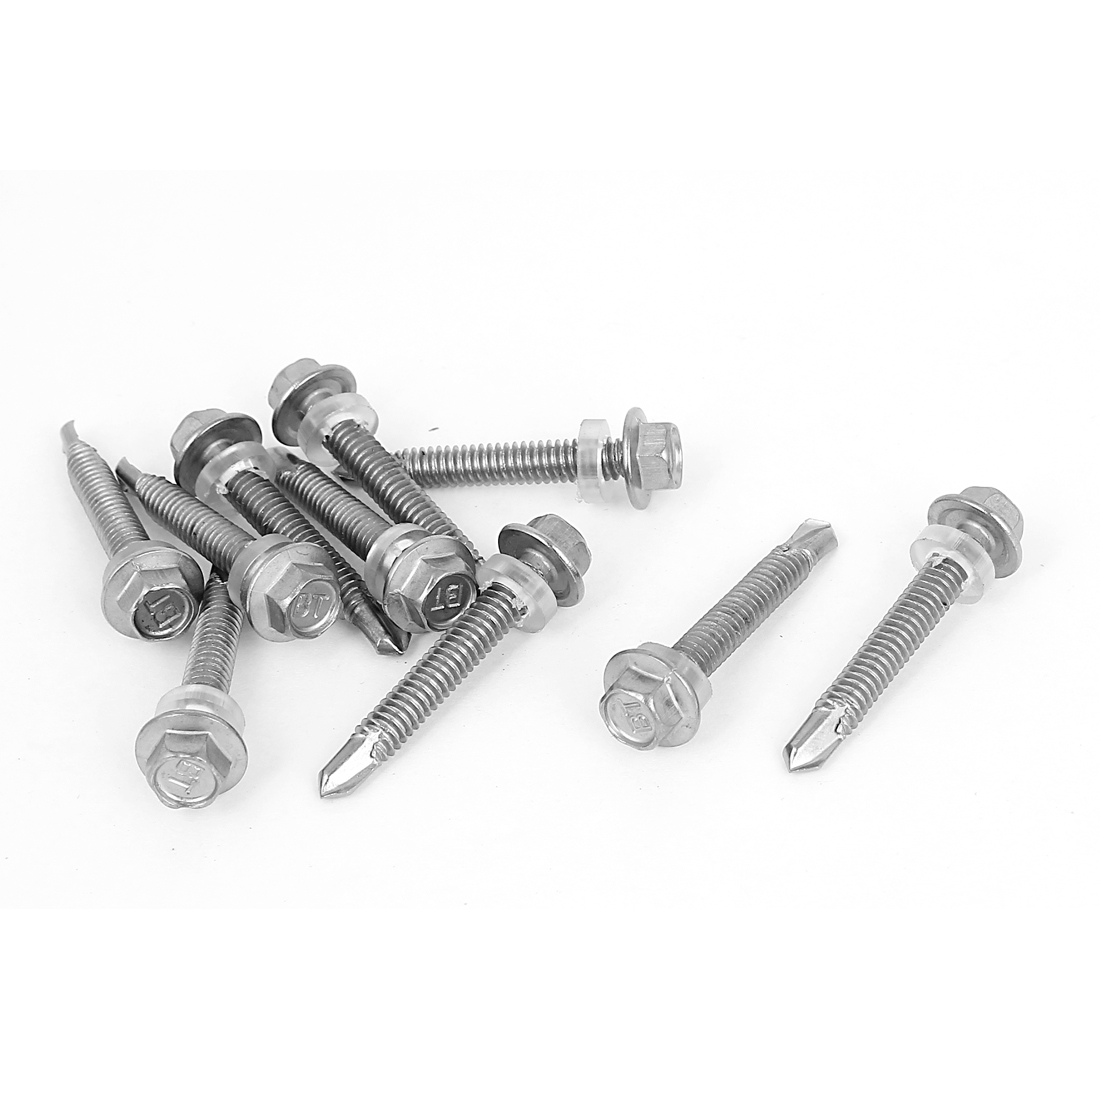 10 Pcs M5.5x38mm Hex Neoprene Washer Head Self Drilling Tapping Roofing Screws